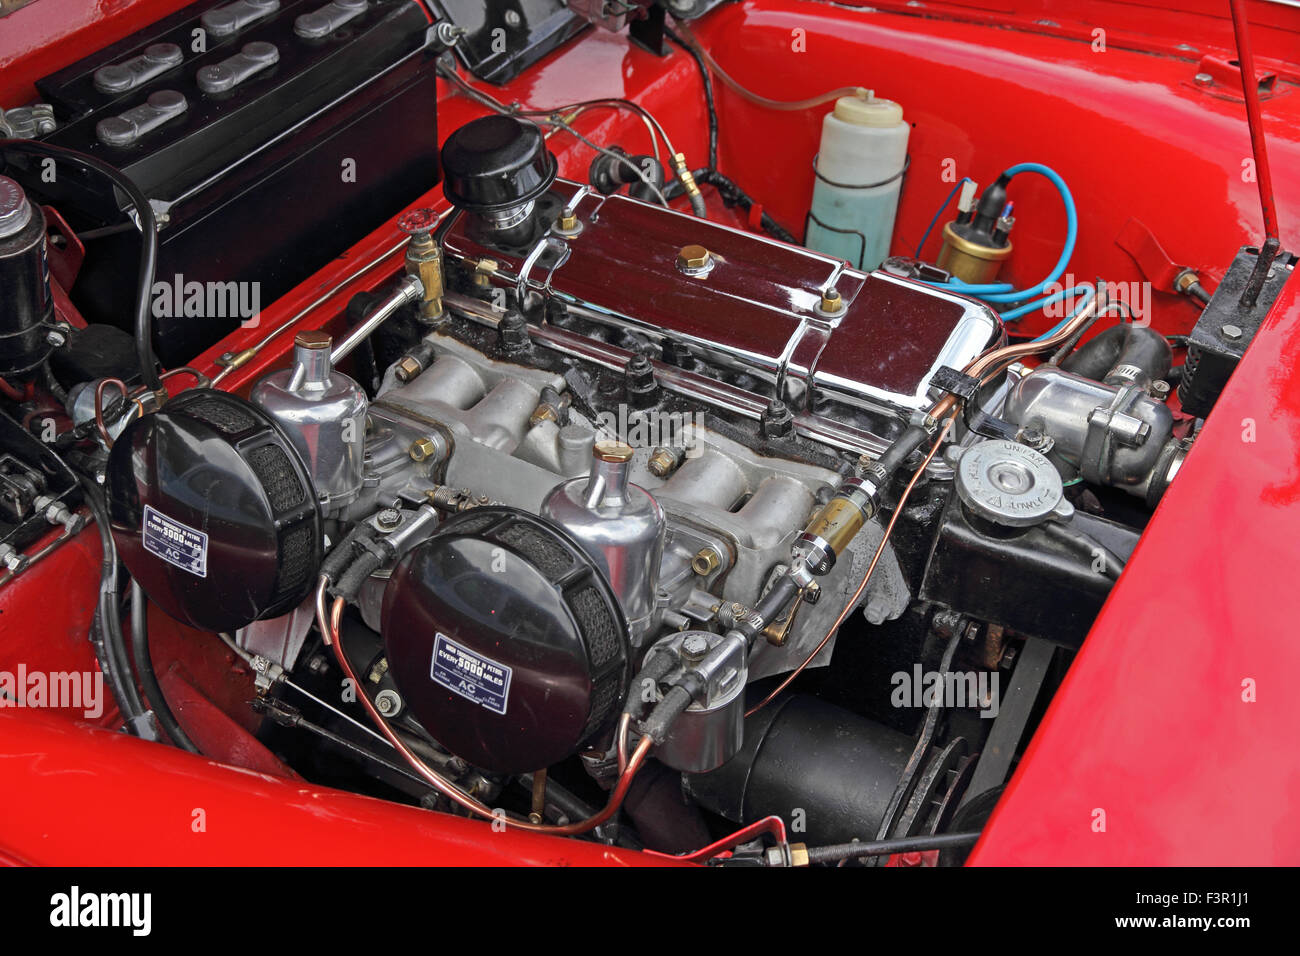 1965 Ford Mustang Power Steering Diagram likewise Auto Fab Racing Swap Ls1 Toyota Prius together with Revisiting The 1967 Alfa Romeo Tipo 33 Stradale also V Rod Wiring Diagram in addition 4qqvi 97 Cadillac Deville Find Wiring Diagram Wiper Motor. on race car wiper motor